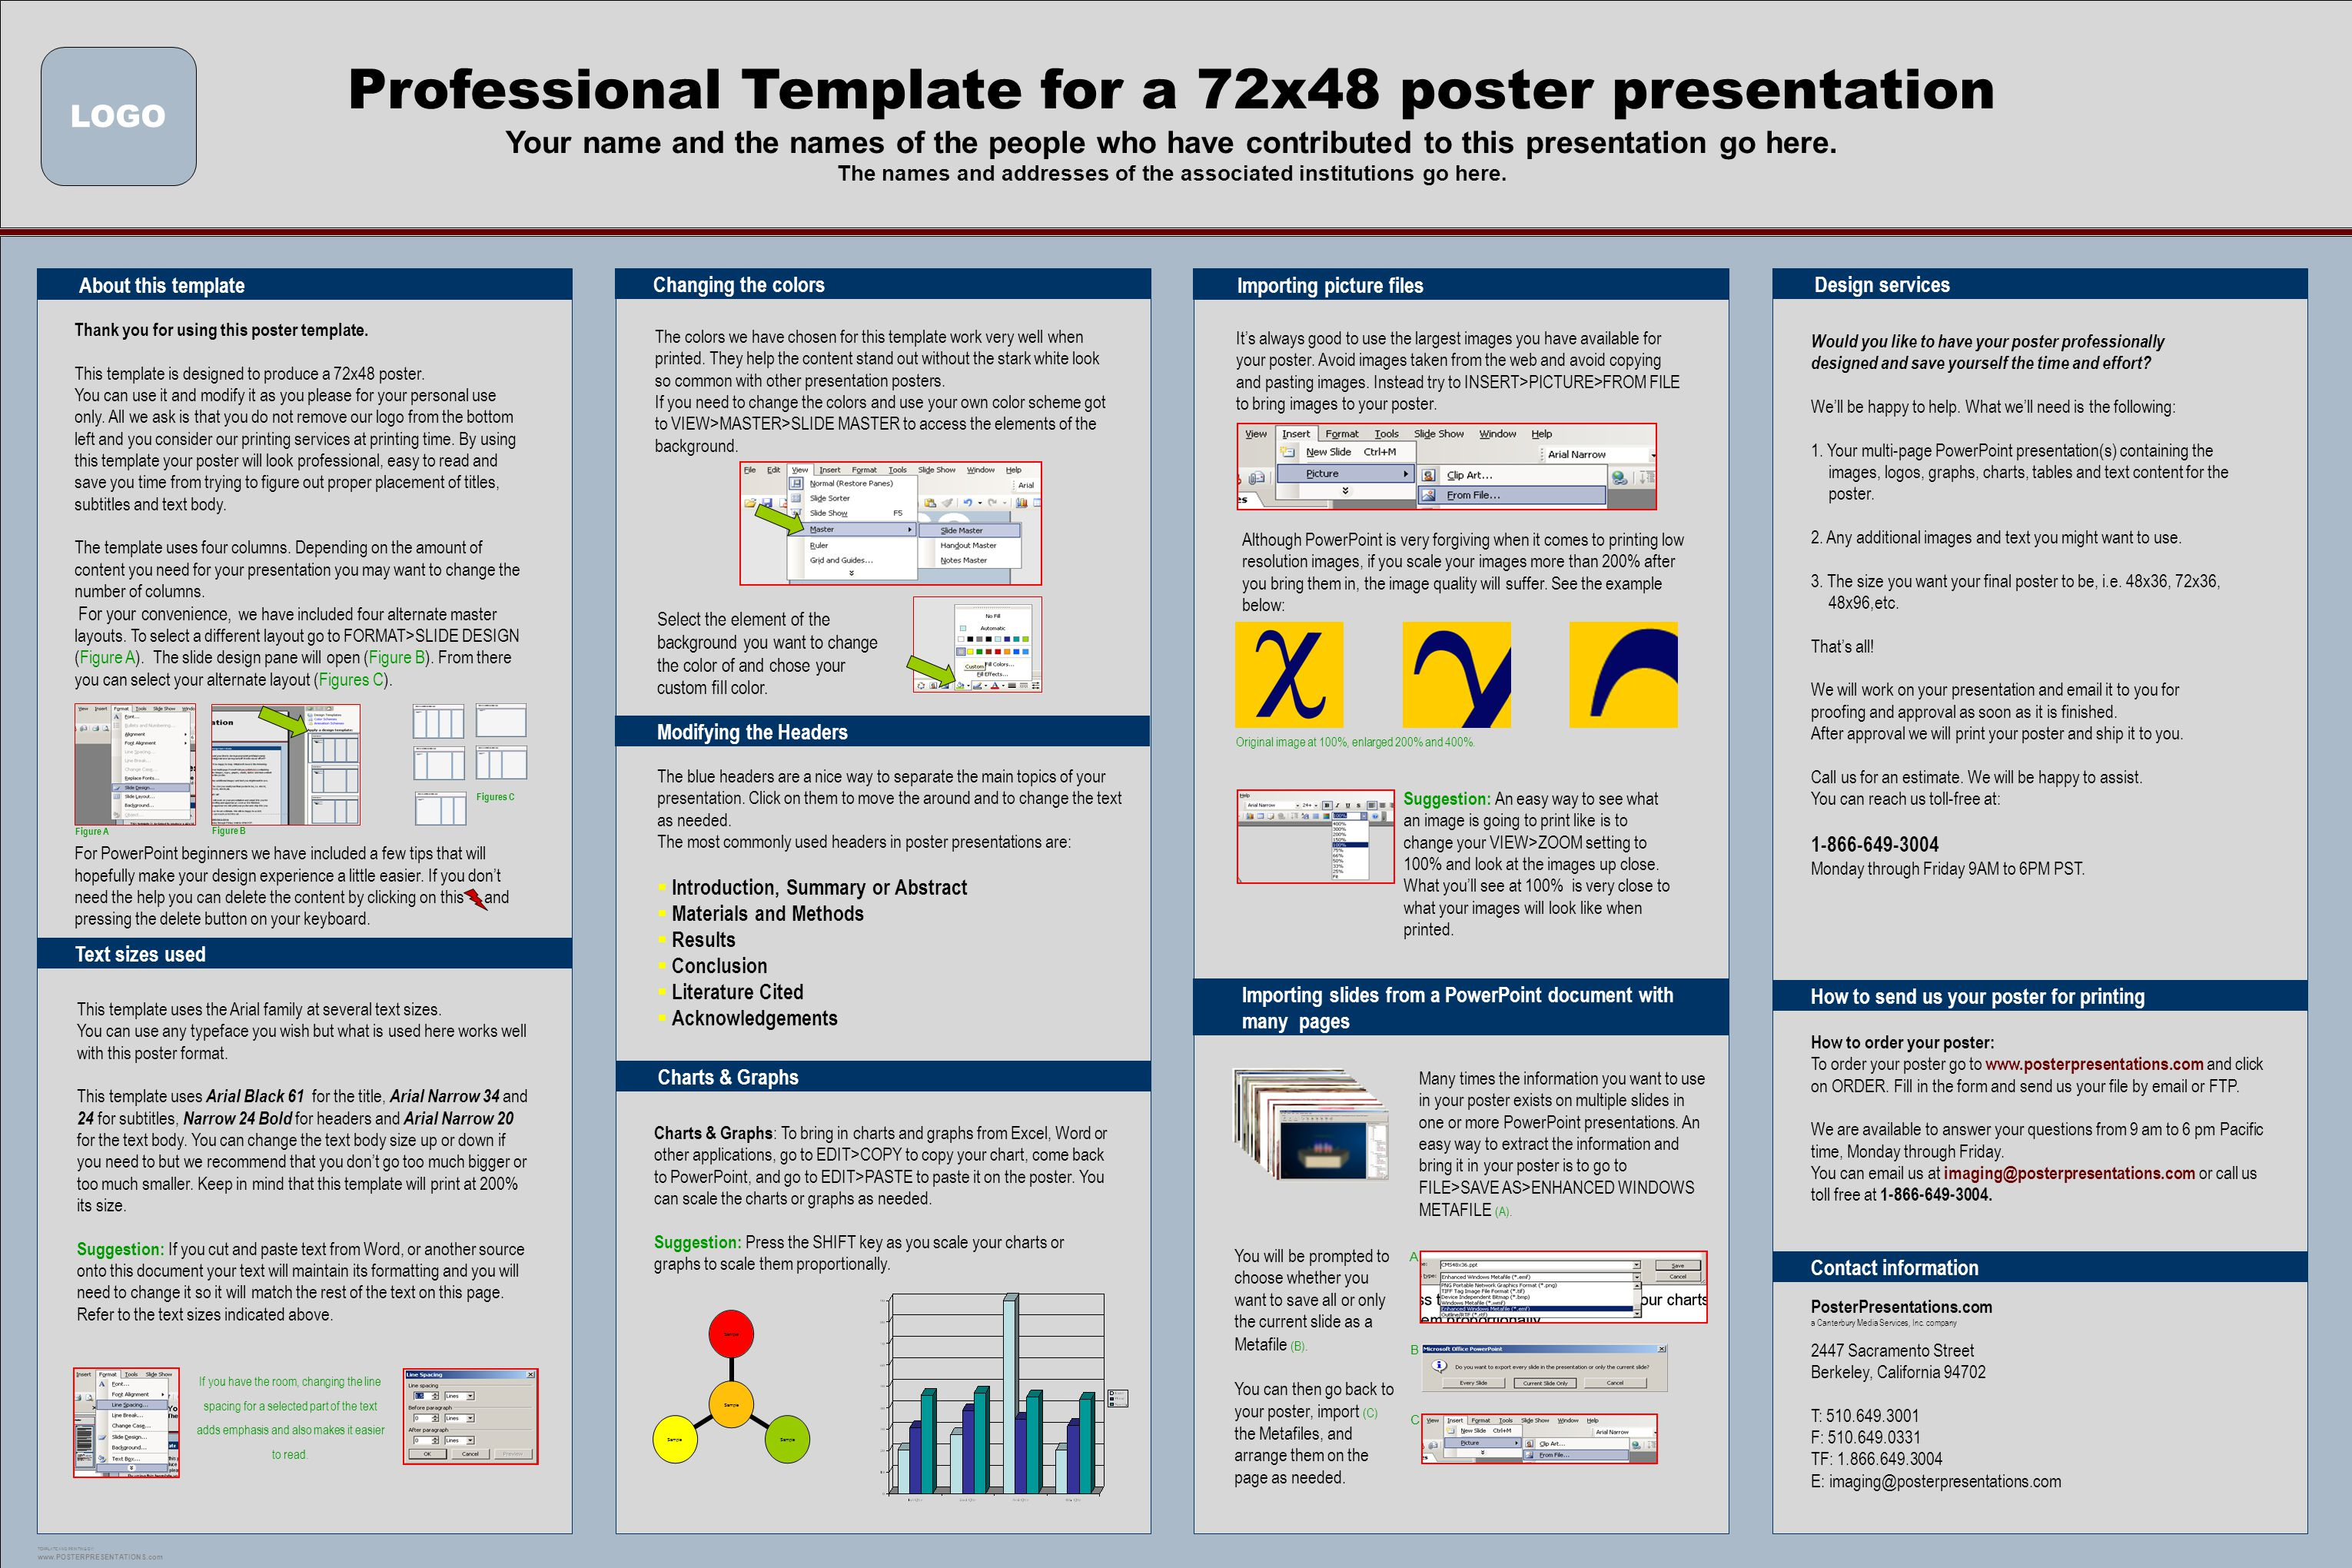 professional template for a 72x48 poster presentation - ppt download, Presentation templates